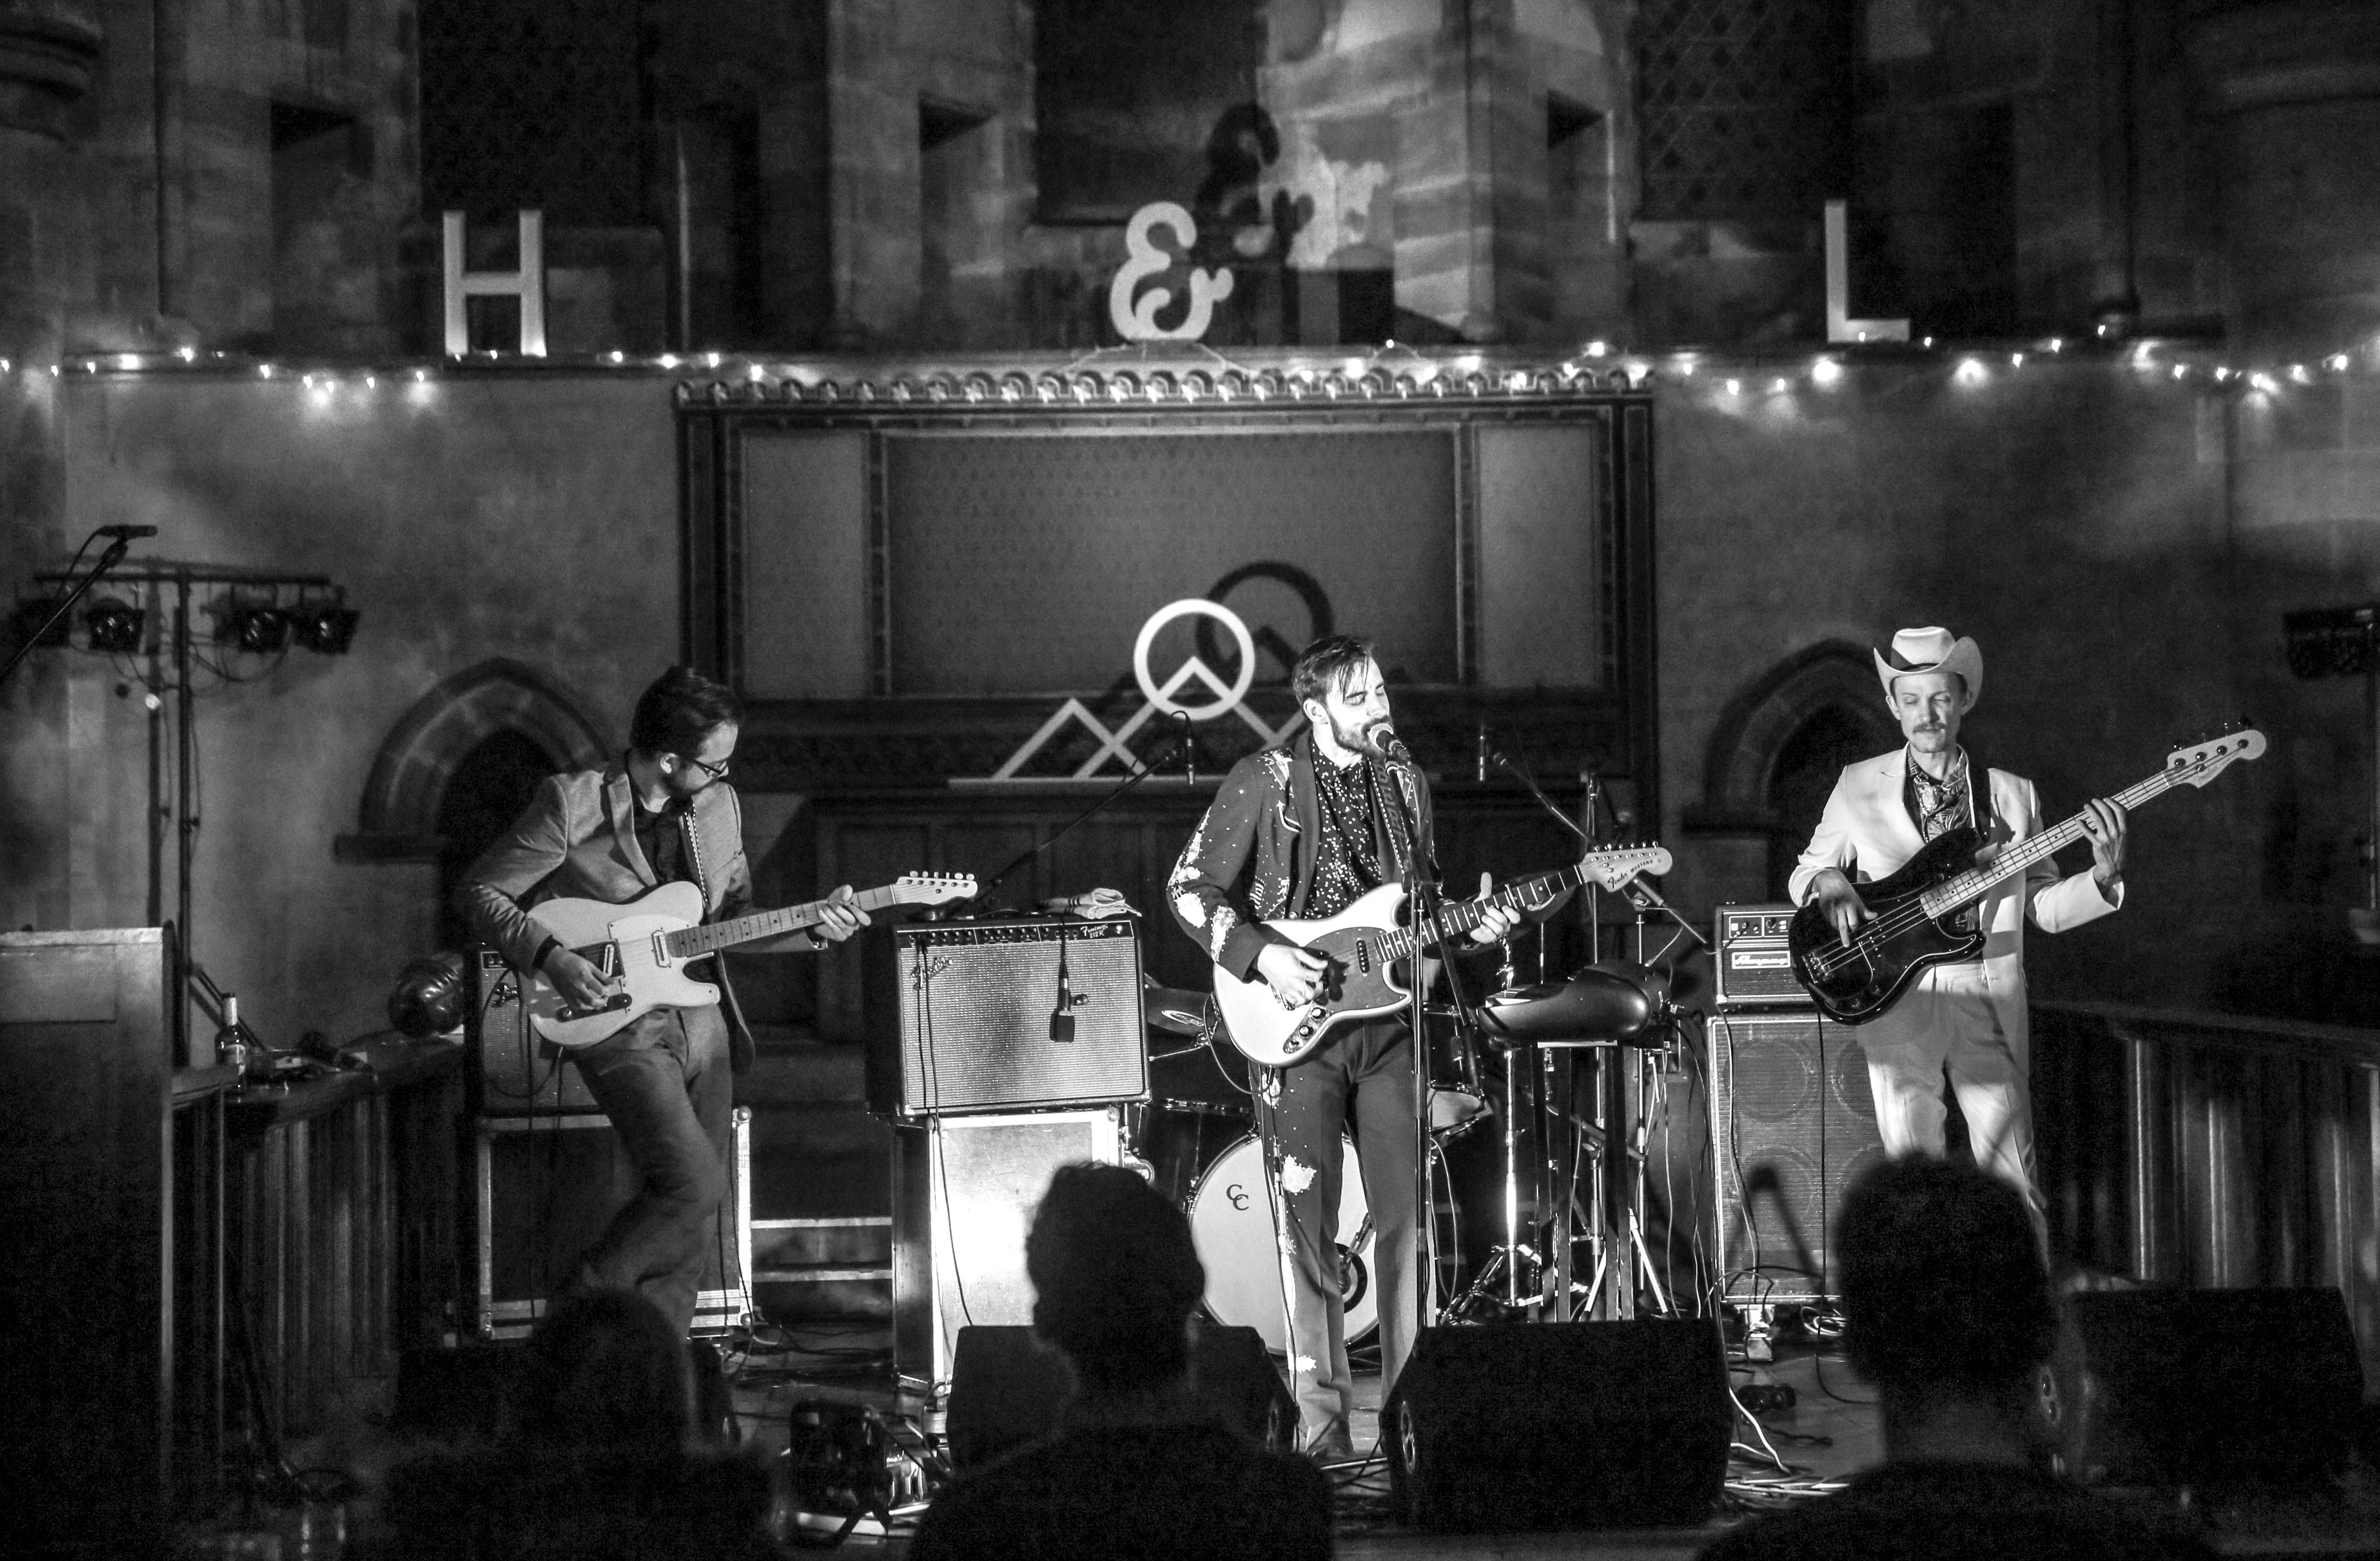 PREVIEW: forthcoming shows in Leeds from High & Lonesome